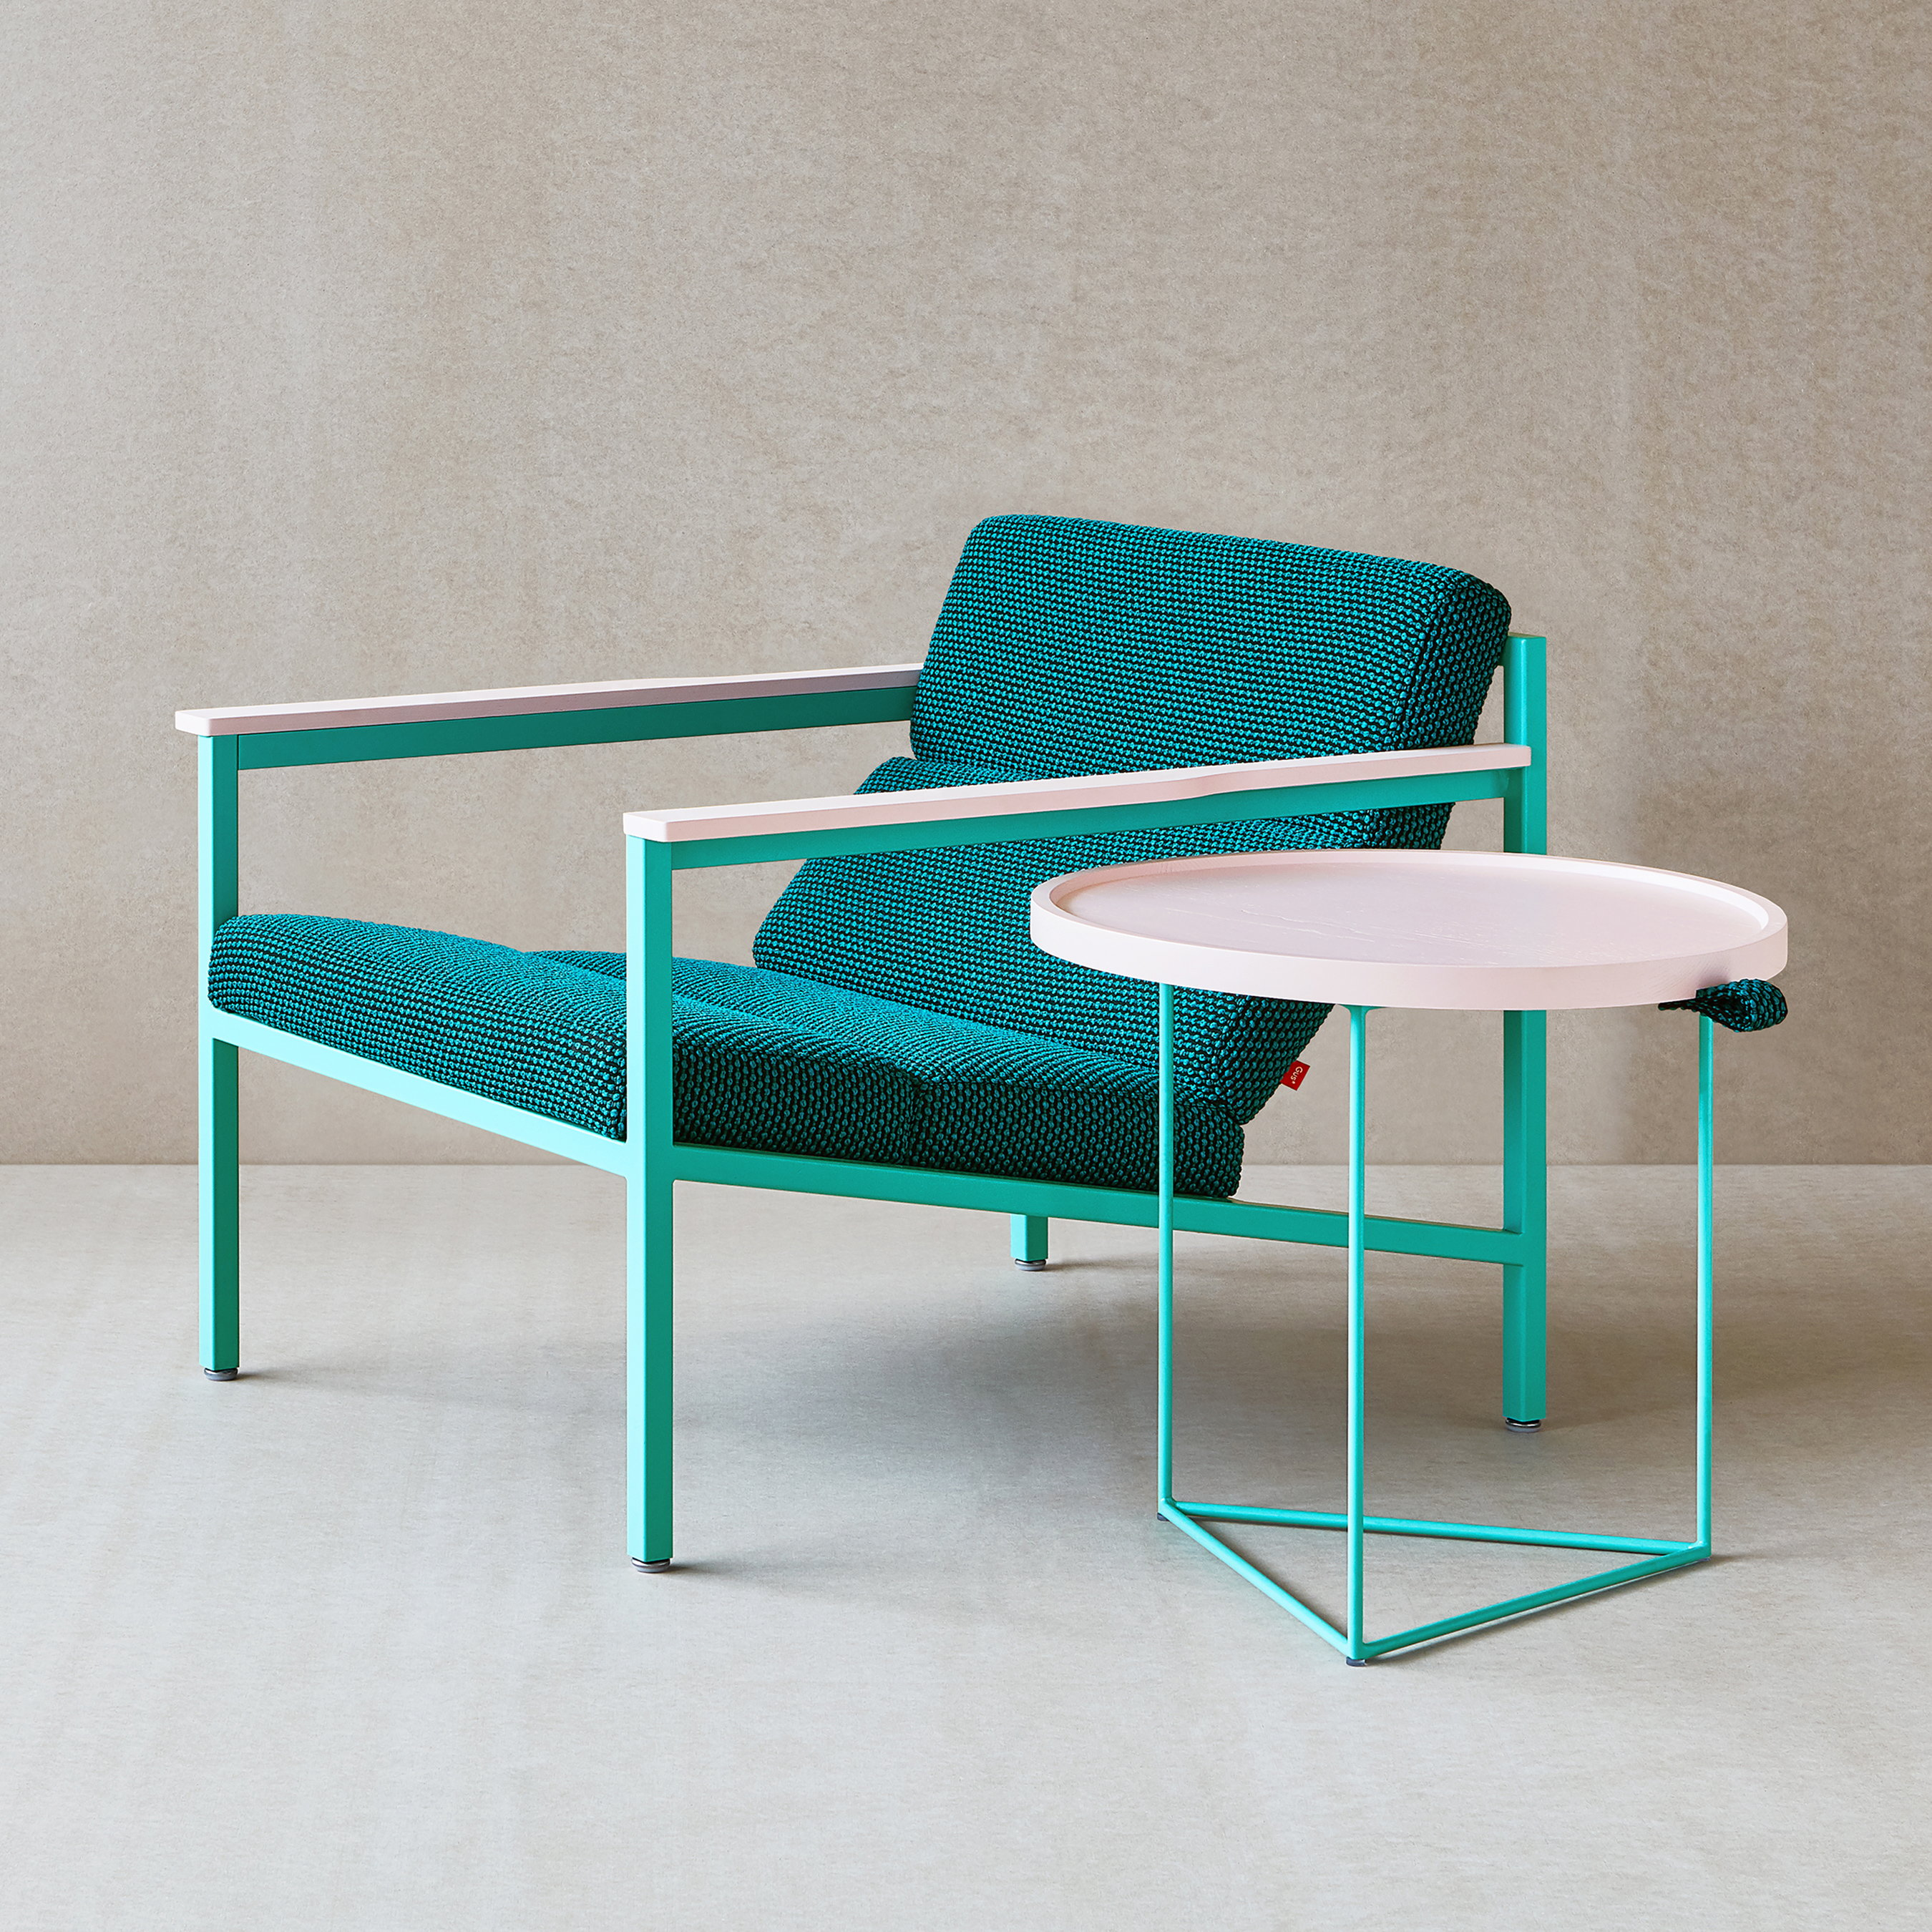 Stupendous Luum Textiles And Gus Modern Unveil Inaugural Furniture Pabps2019 Chair Design Images Pabps2019Com